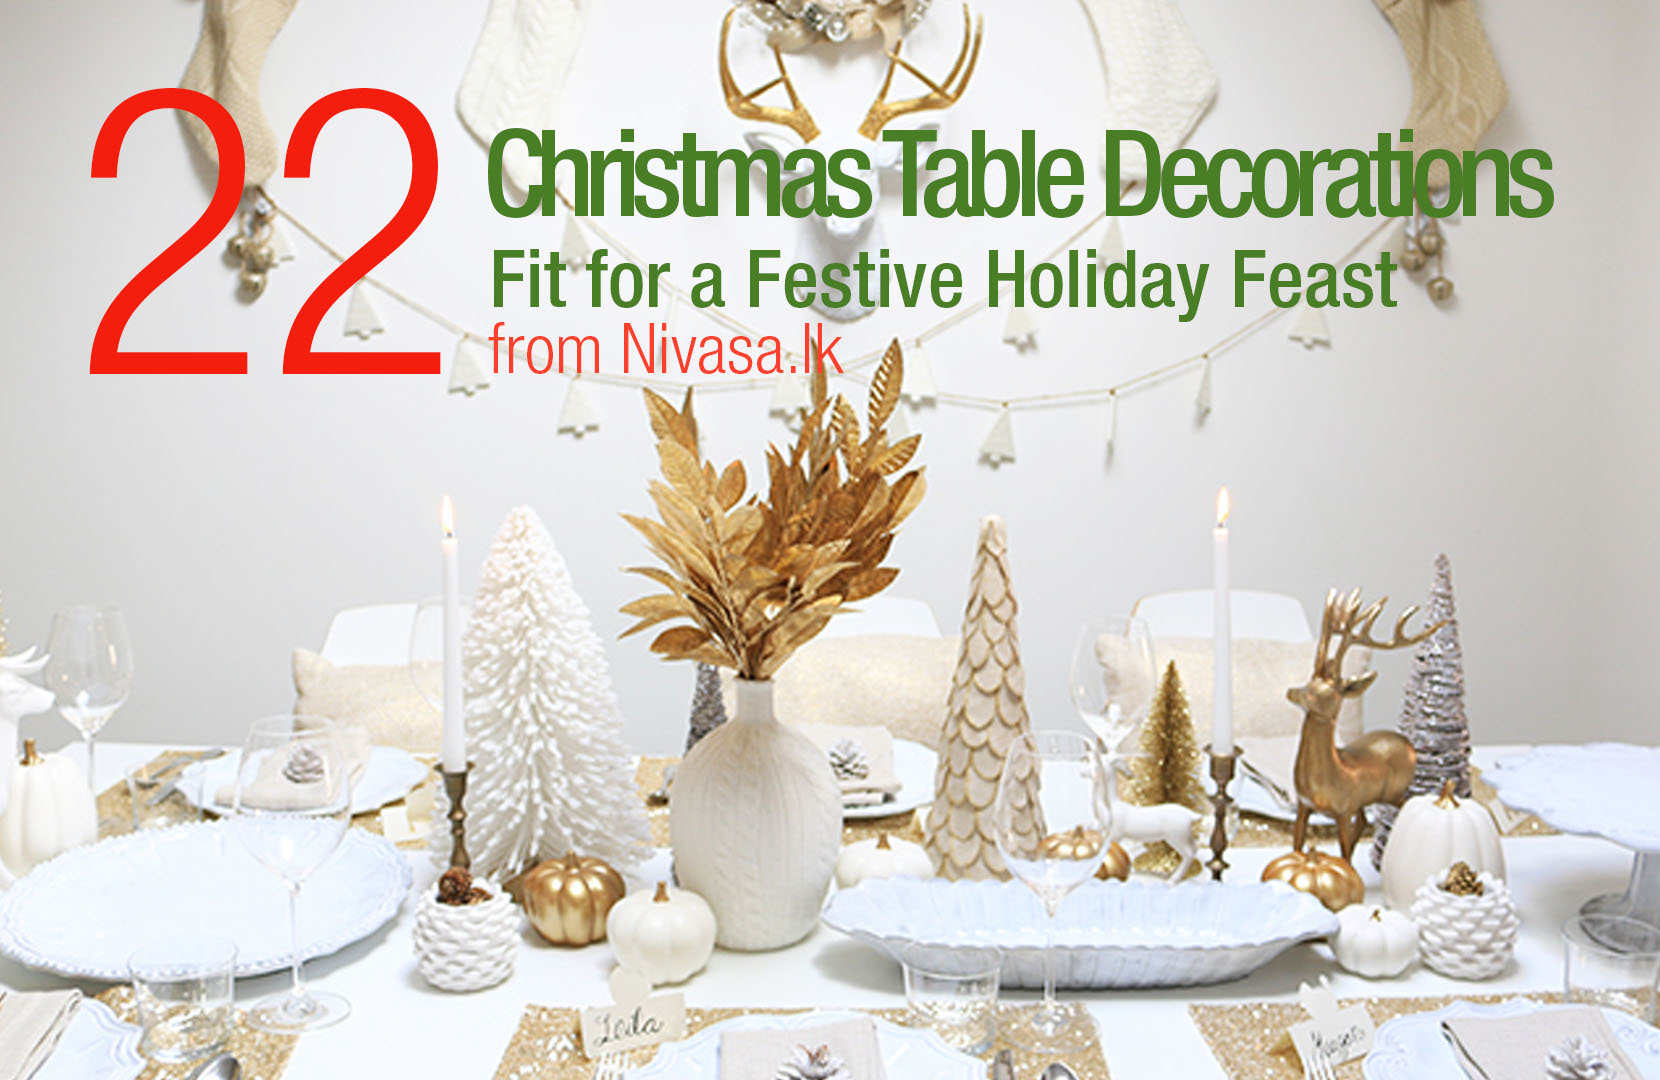 22 Christmas Table Decorations Fit for a Festive Holiday Feast